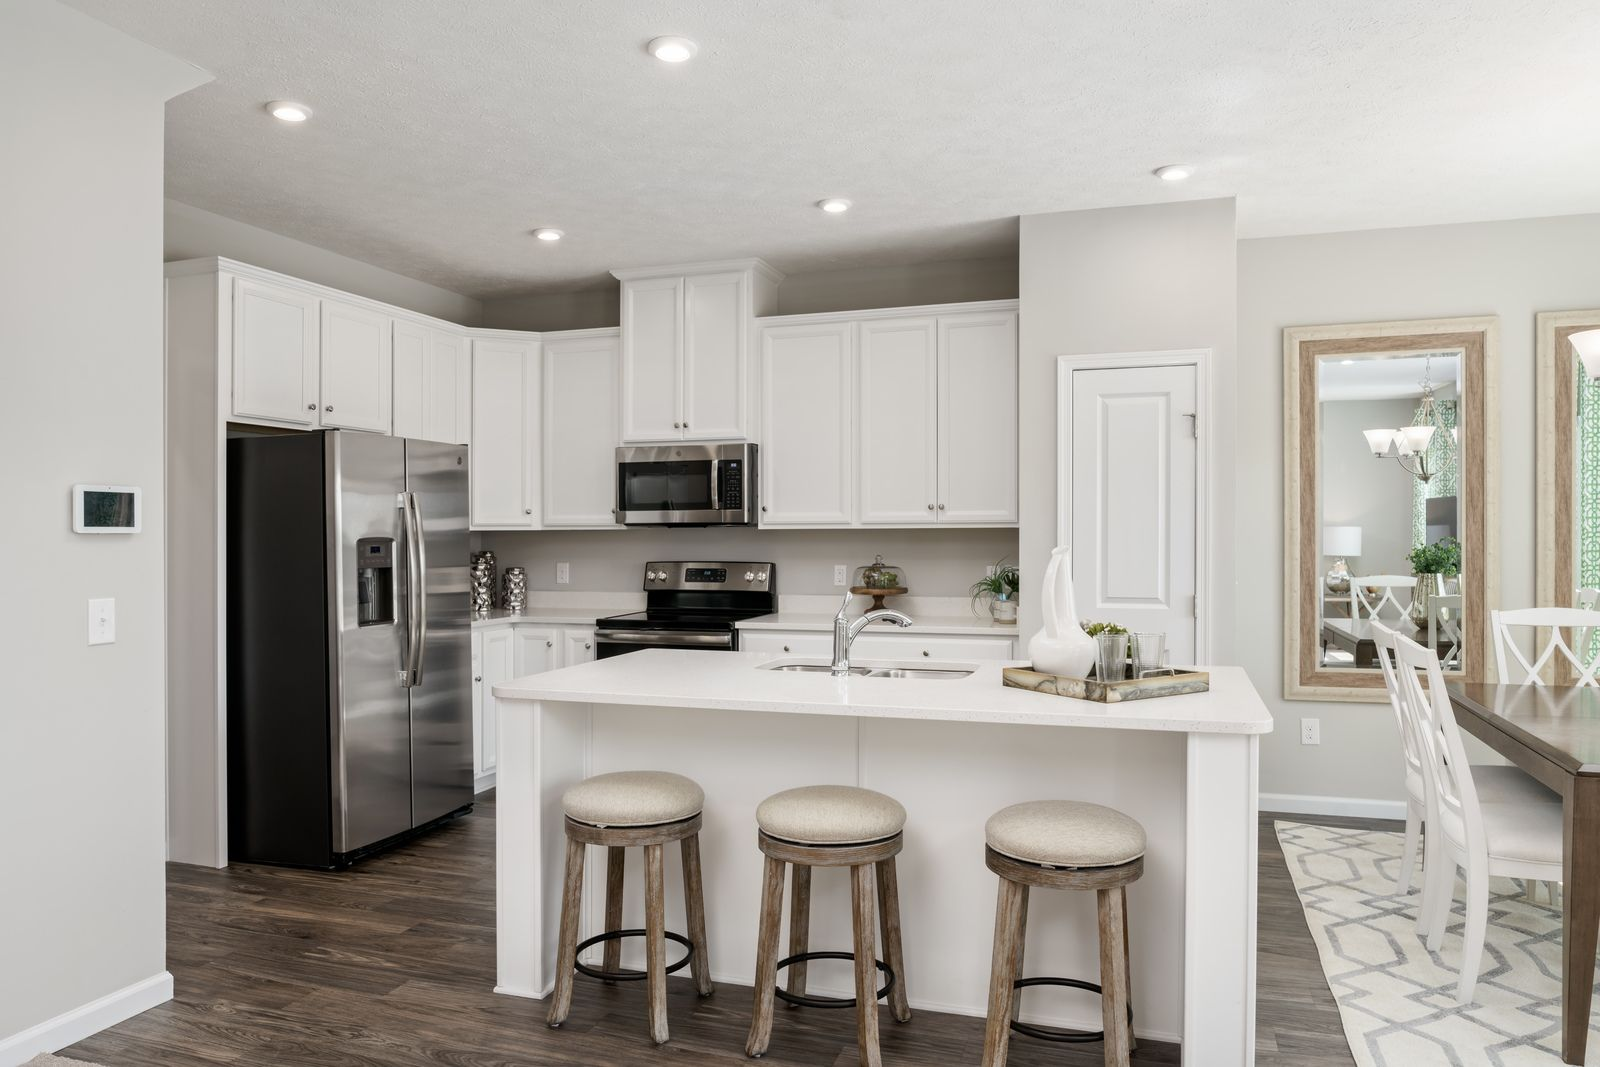 Kitchen featured in the Rosecliff Lux w/ 2' Extension By Ryan Homes in Cleveland, OH